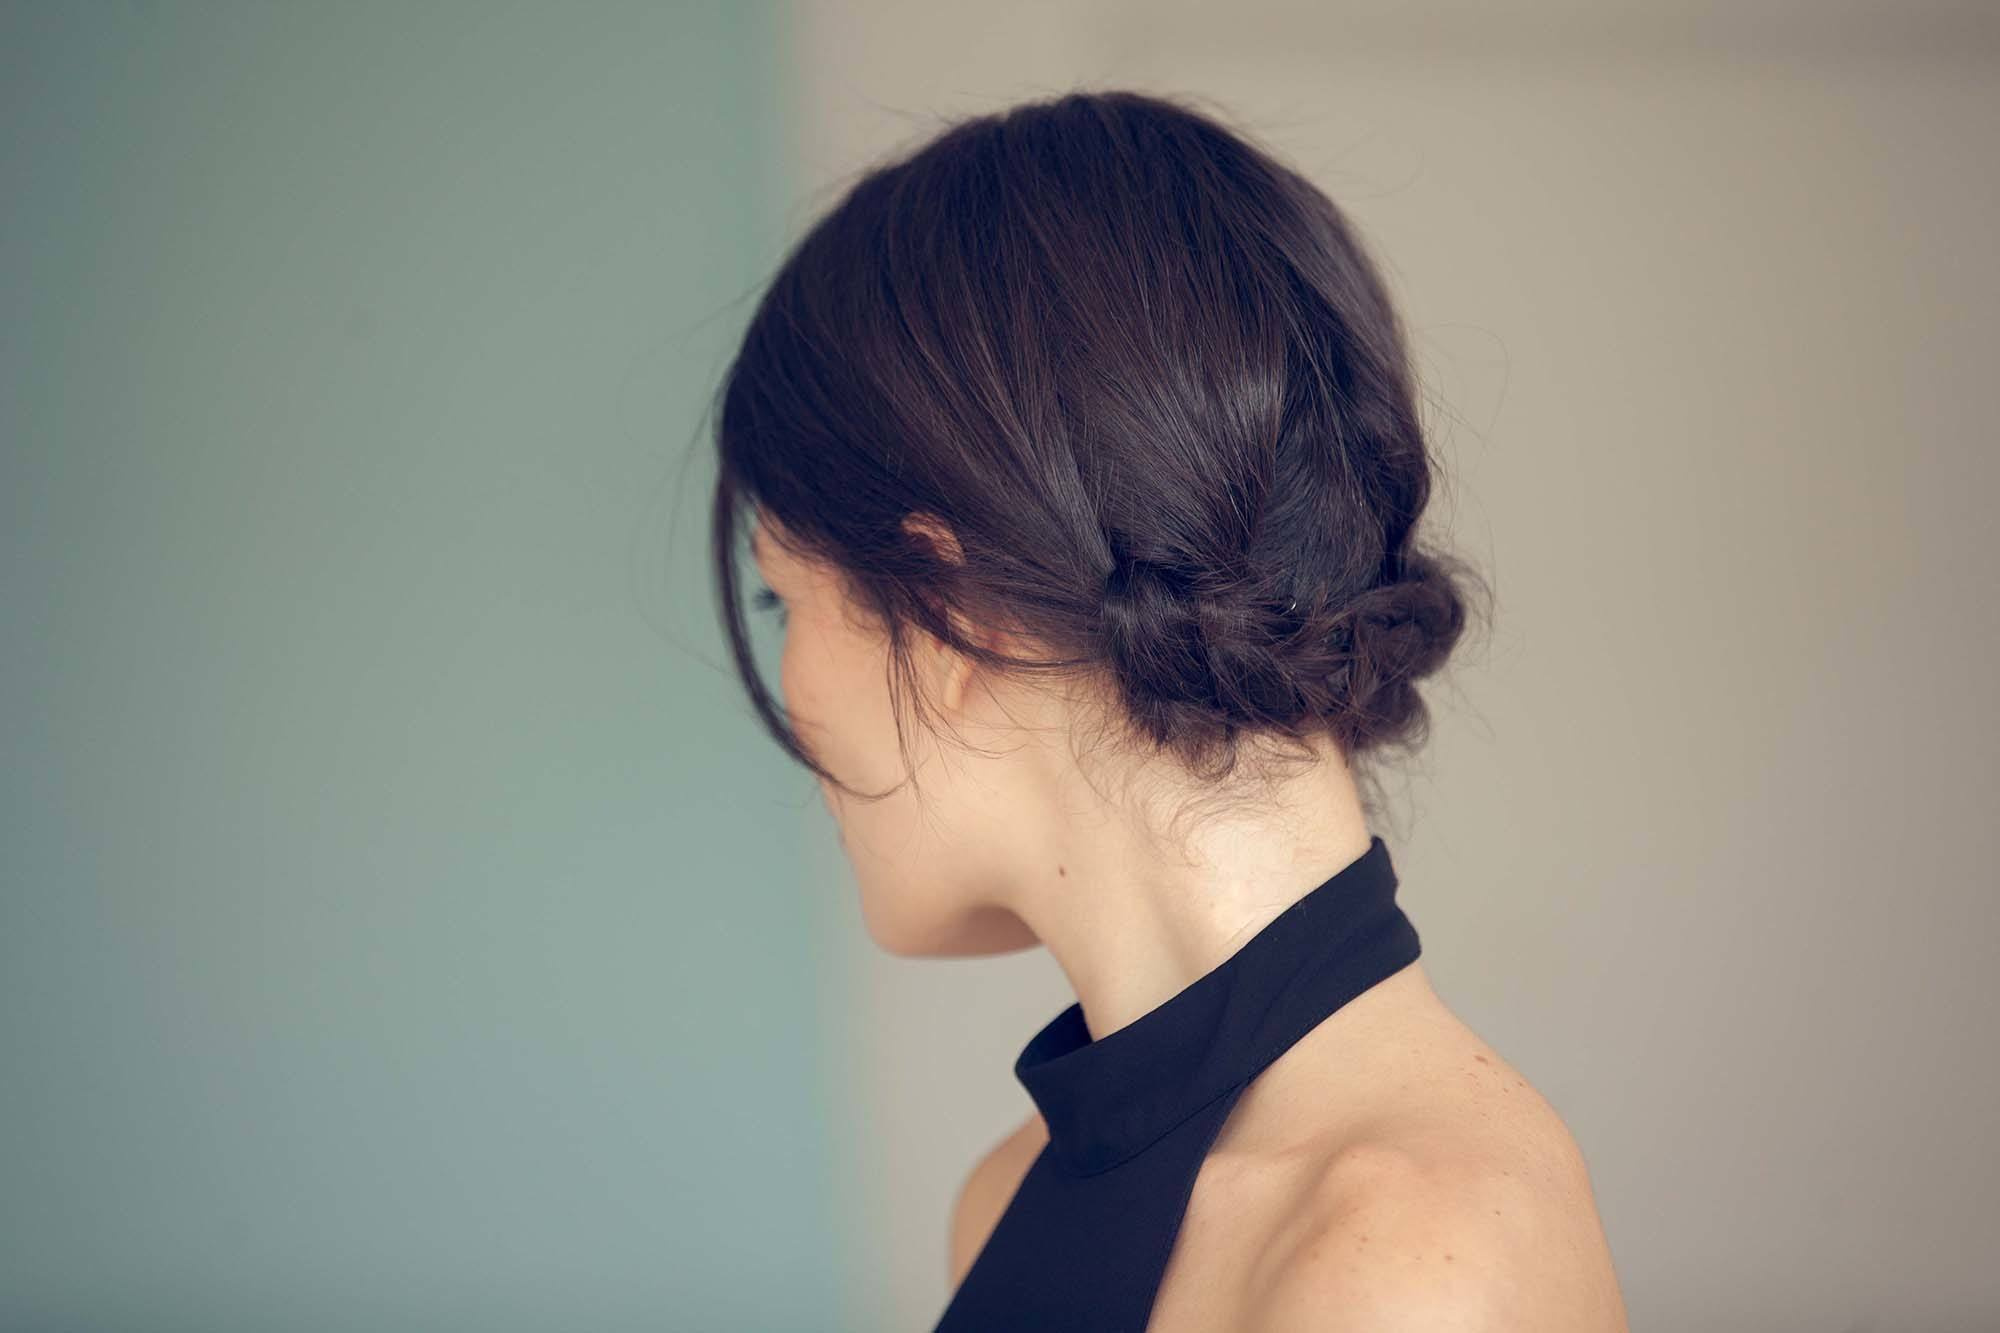 Club Hairstyles 21 Hot Hairstyles To Prep For Your Next Night Out